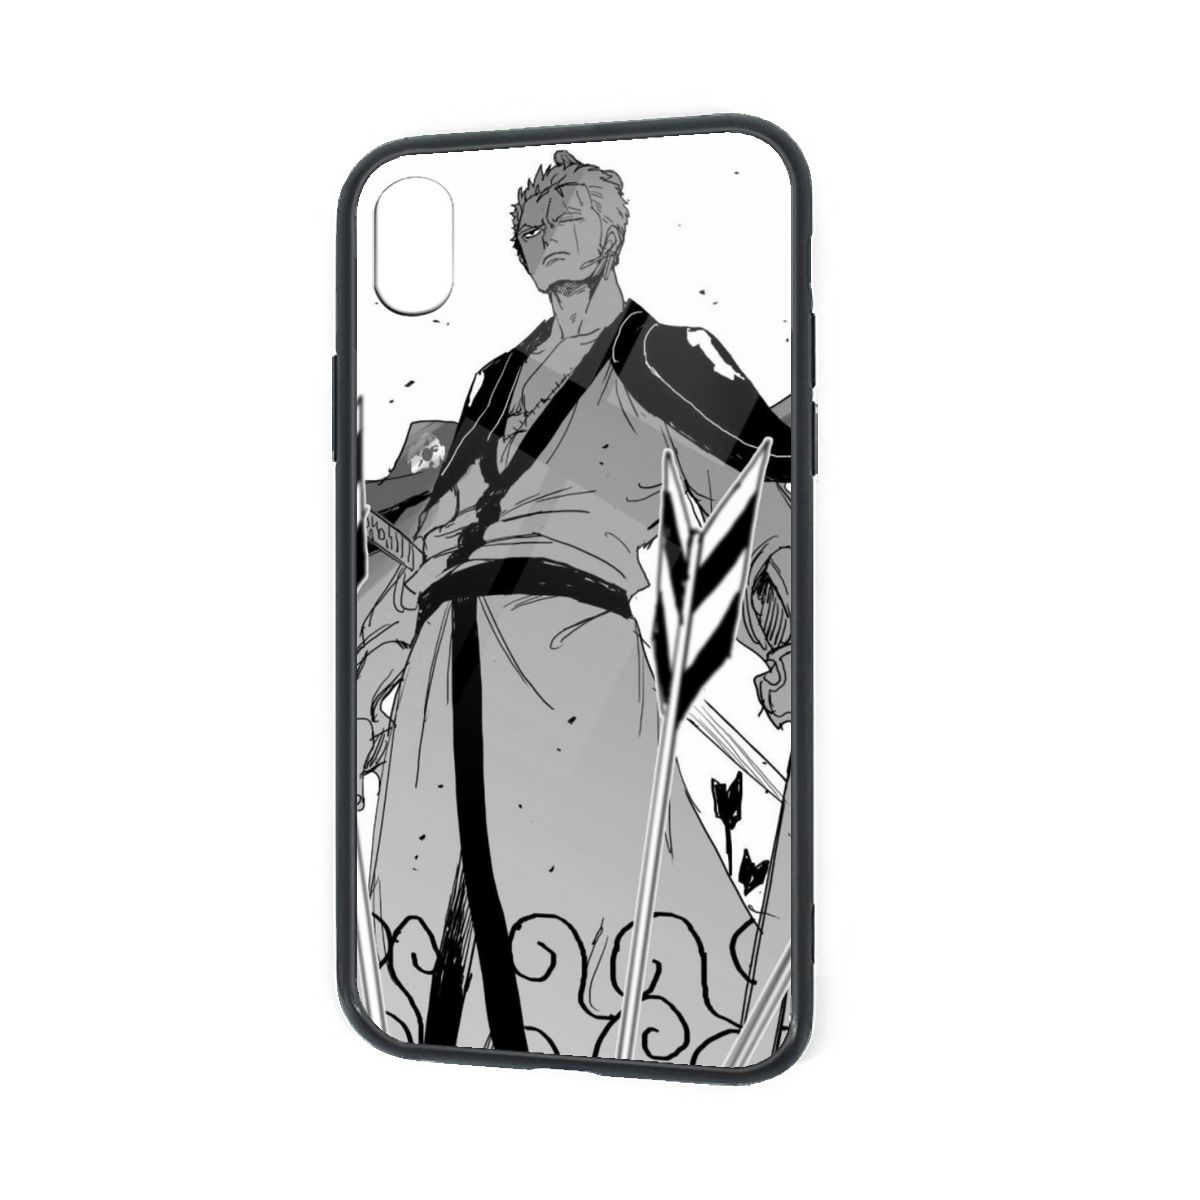 IPhone X XR XS 6 7 8 Plus Soft TPU Case Cover Samurai Zoro